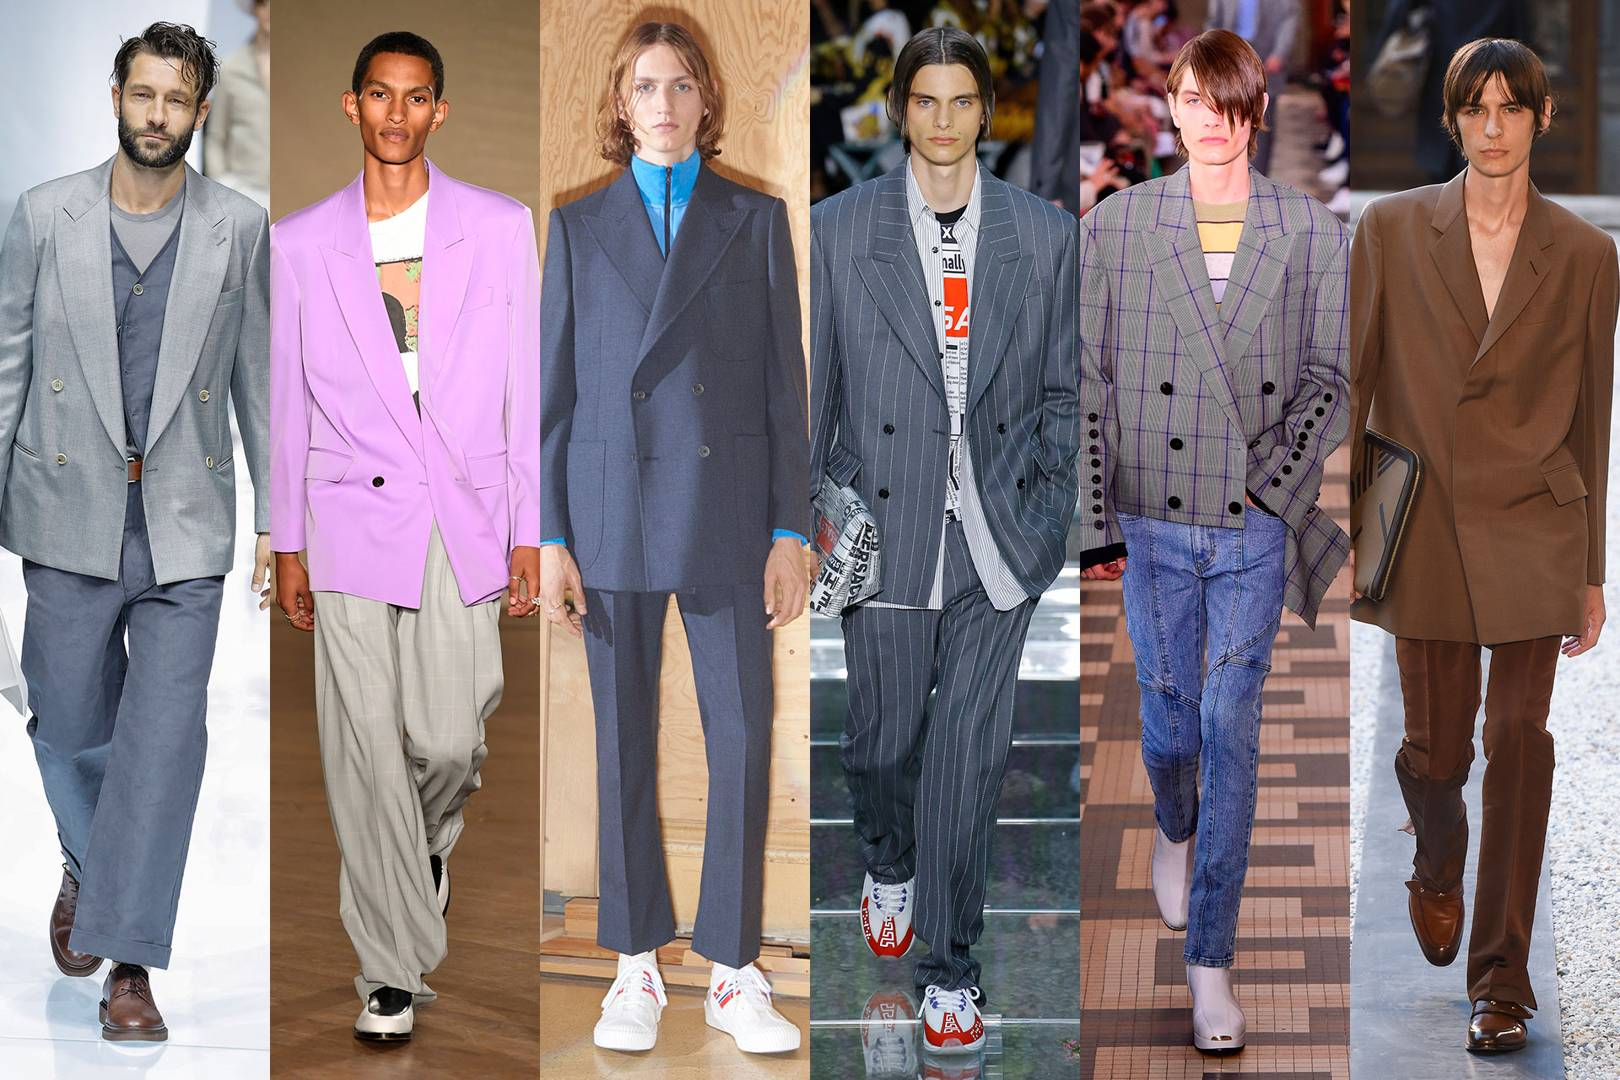 Discussion on this topic: Heres The Next Summer Colour Men Will , heres-the-next-summer-colour-men-will/